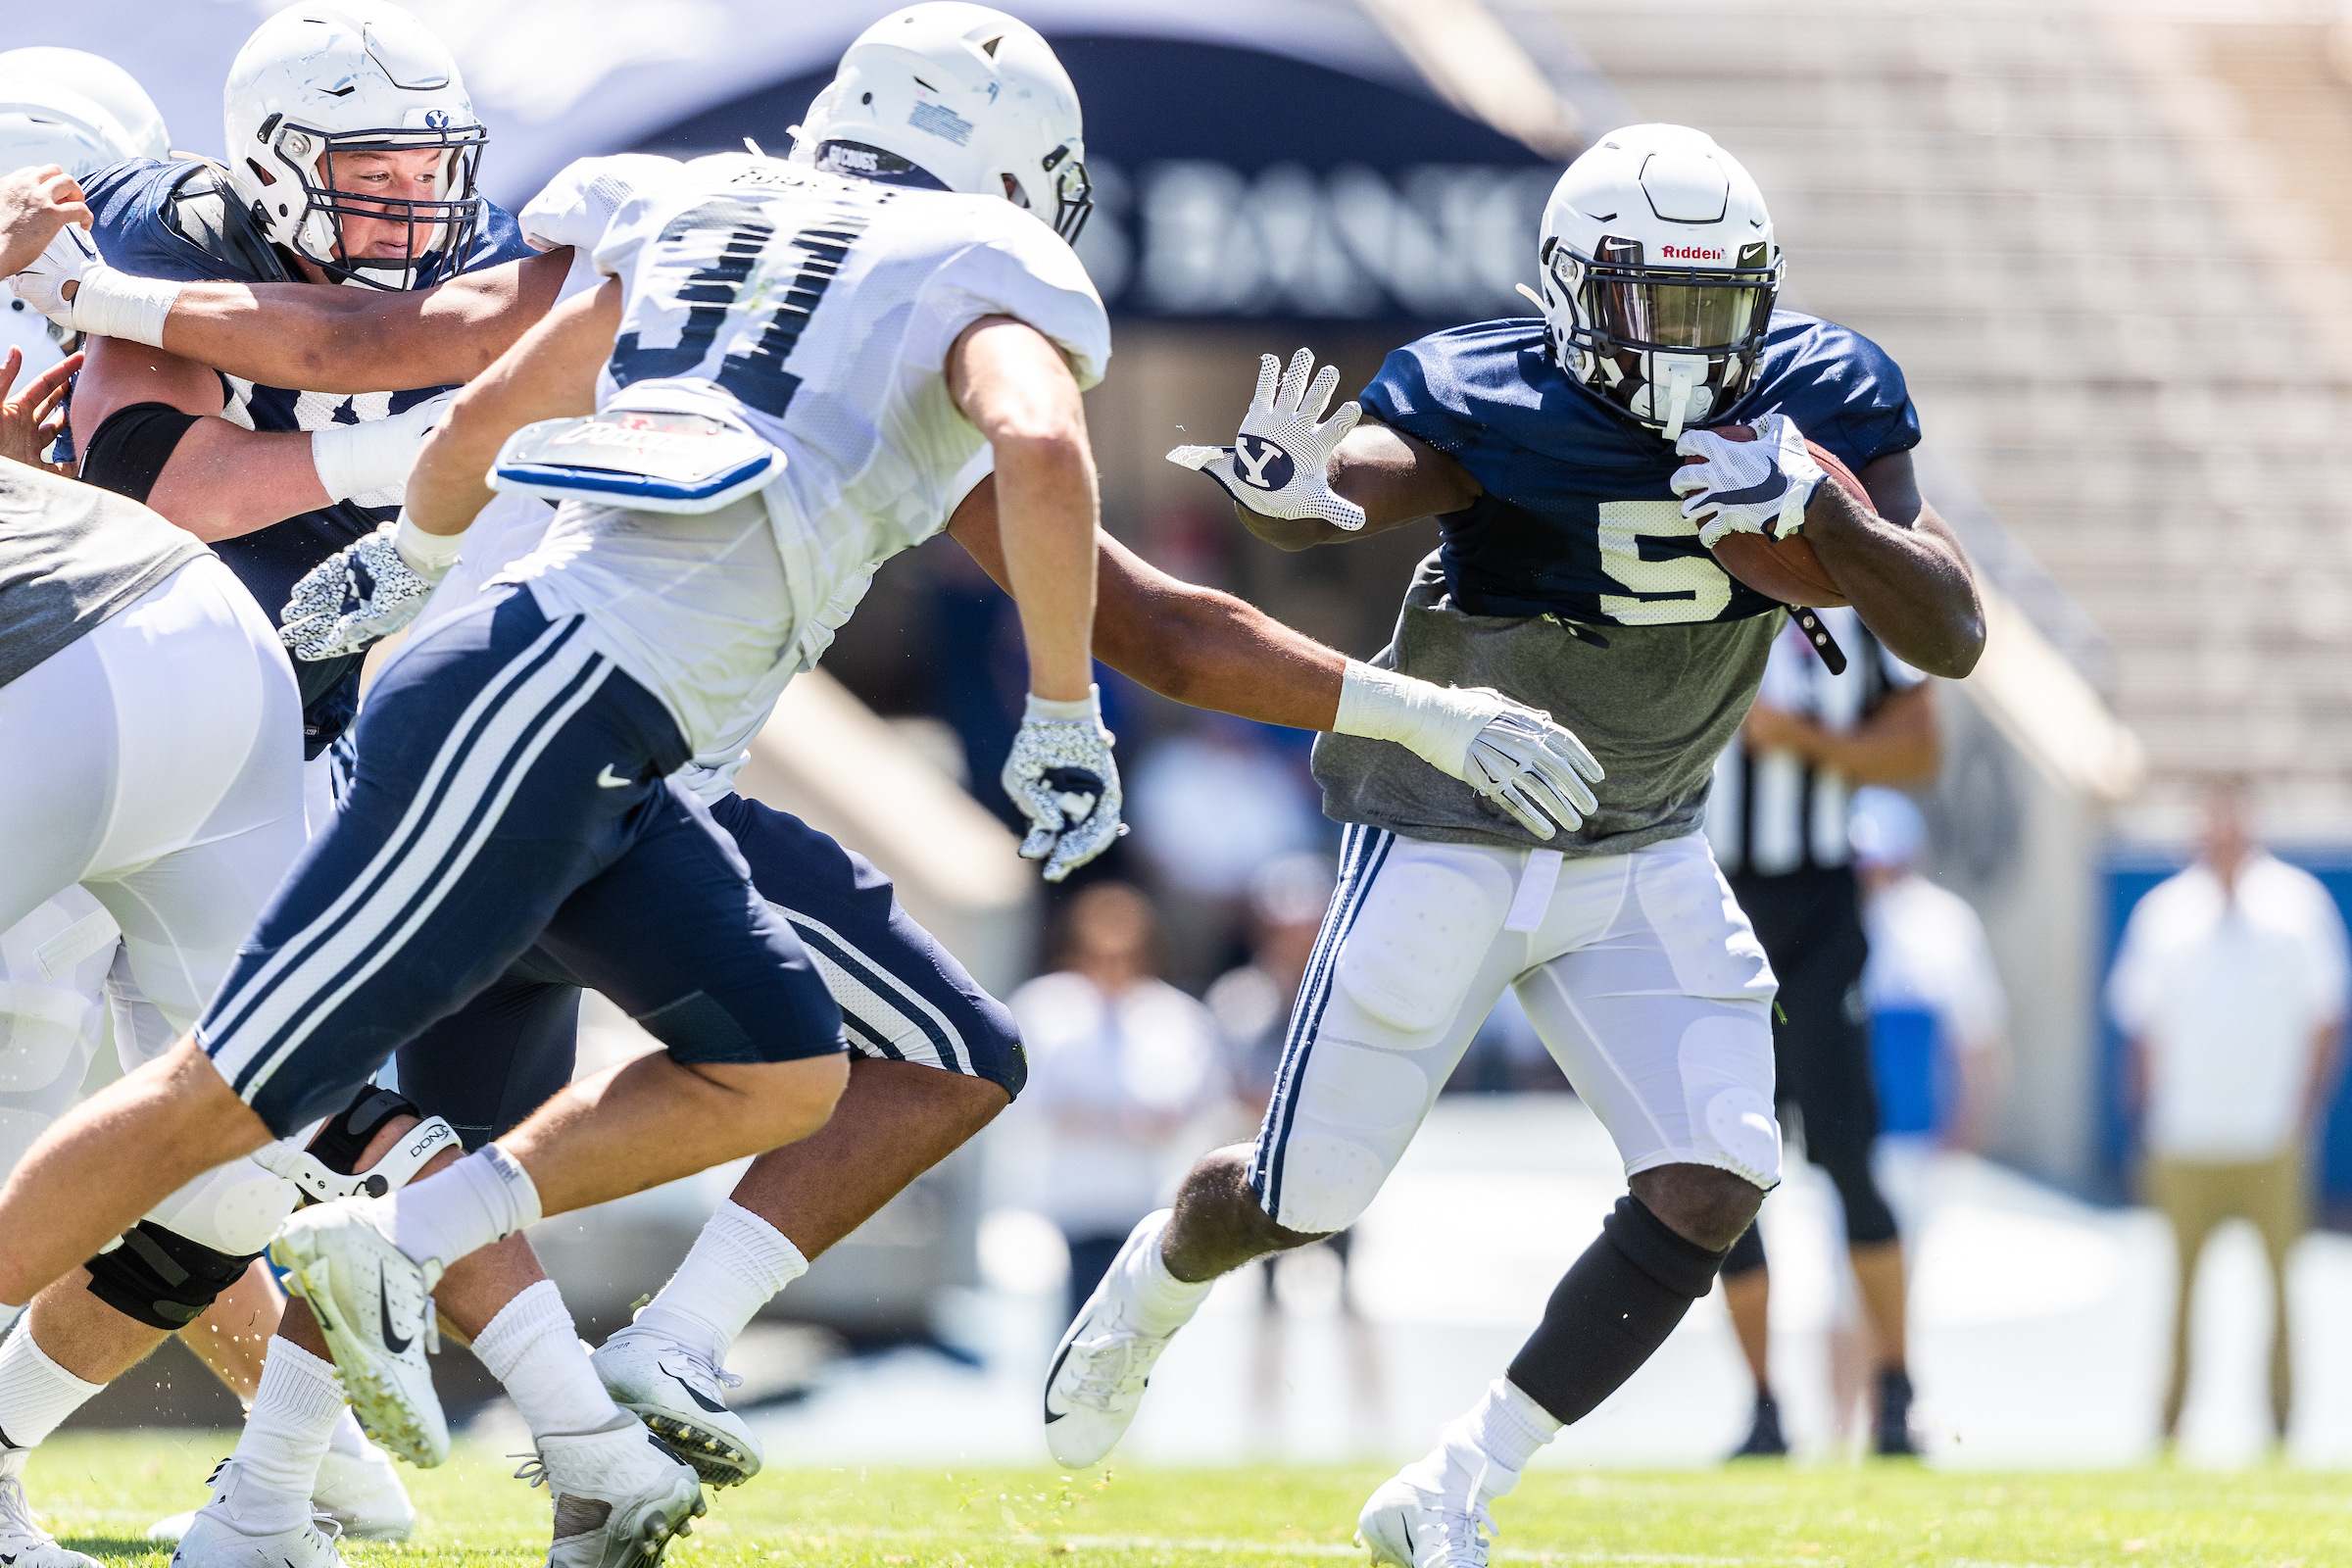 BYU running back Ty'Son Williams (5) runs with the ball as linebacker Max Tooley (31) defends during the Cougars' scrimmage at LaVell Edwards Stadium on Saturday, Aug. 10, 2019.